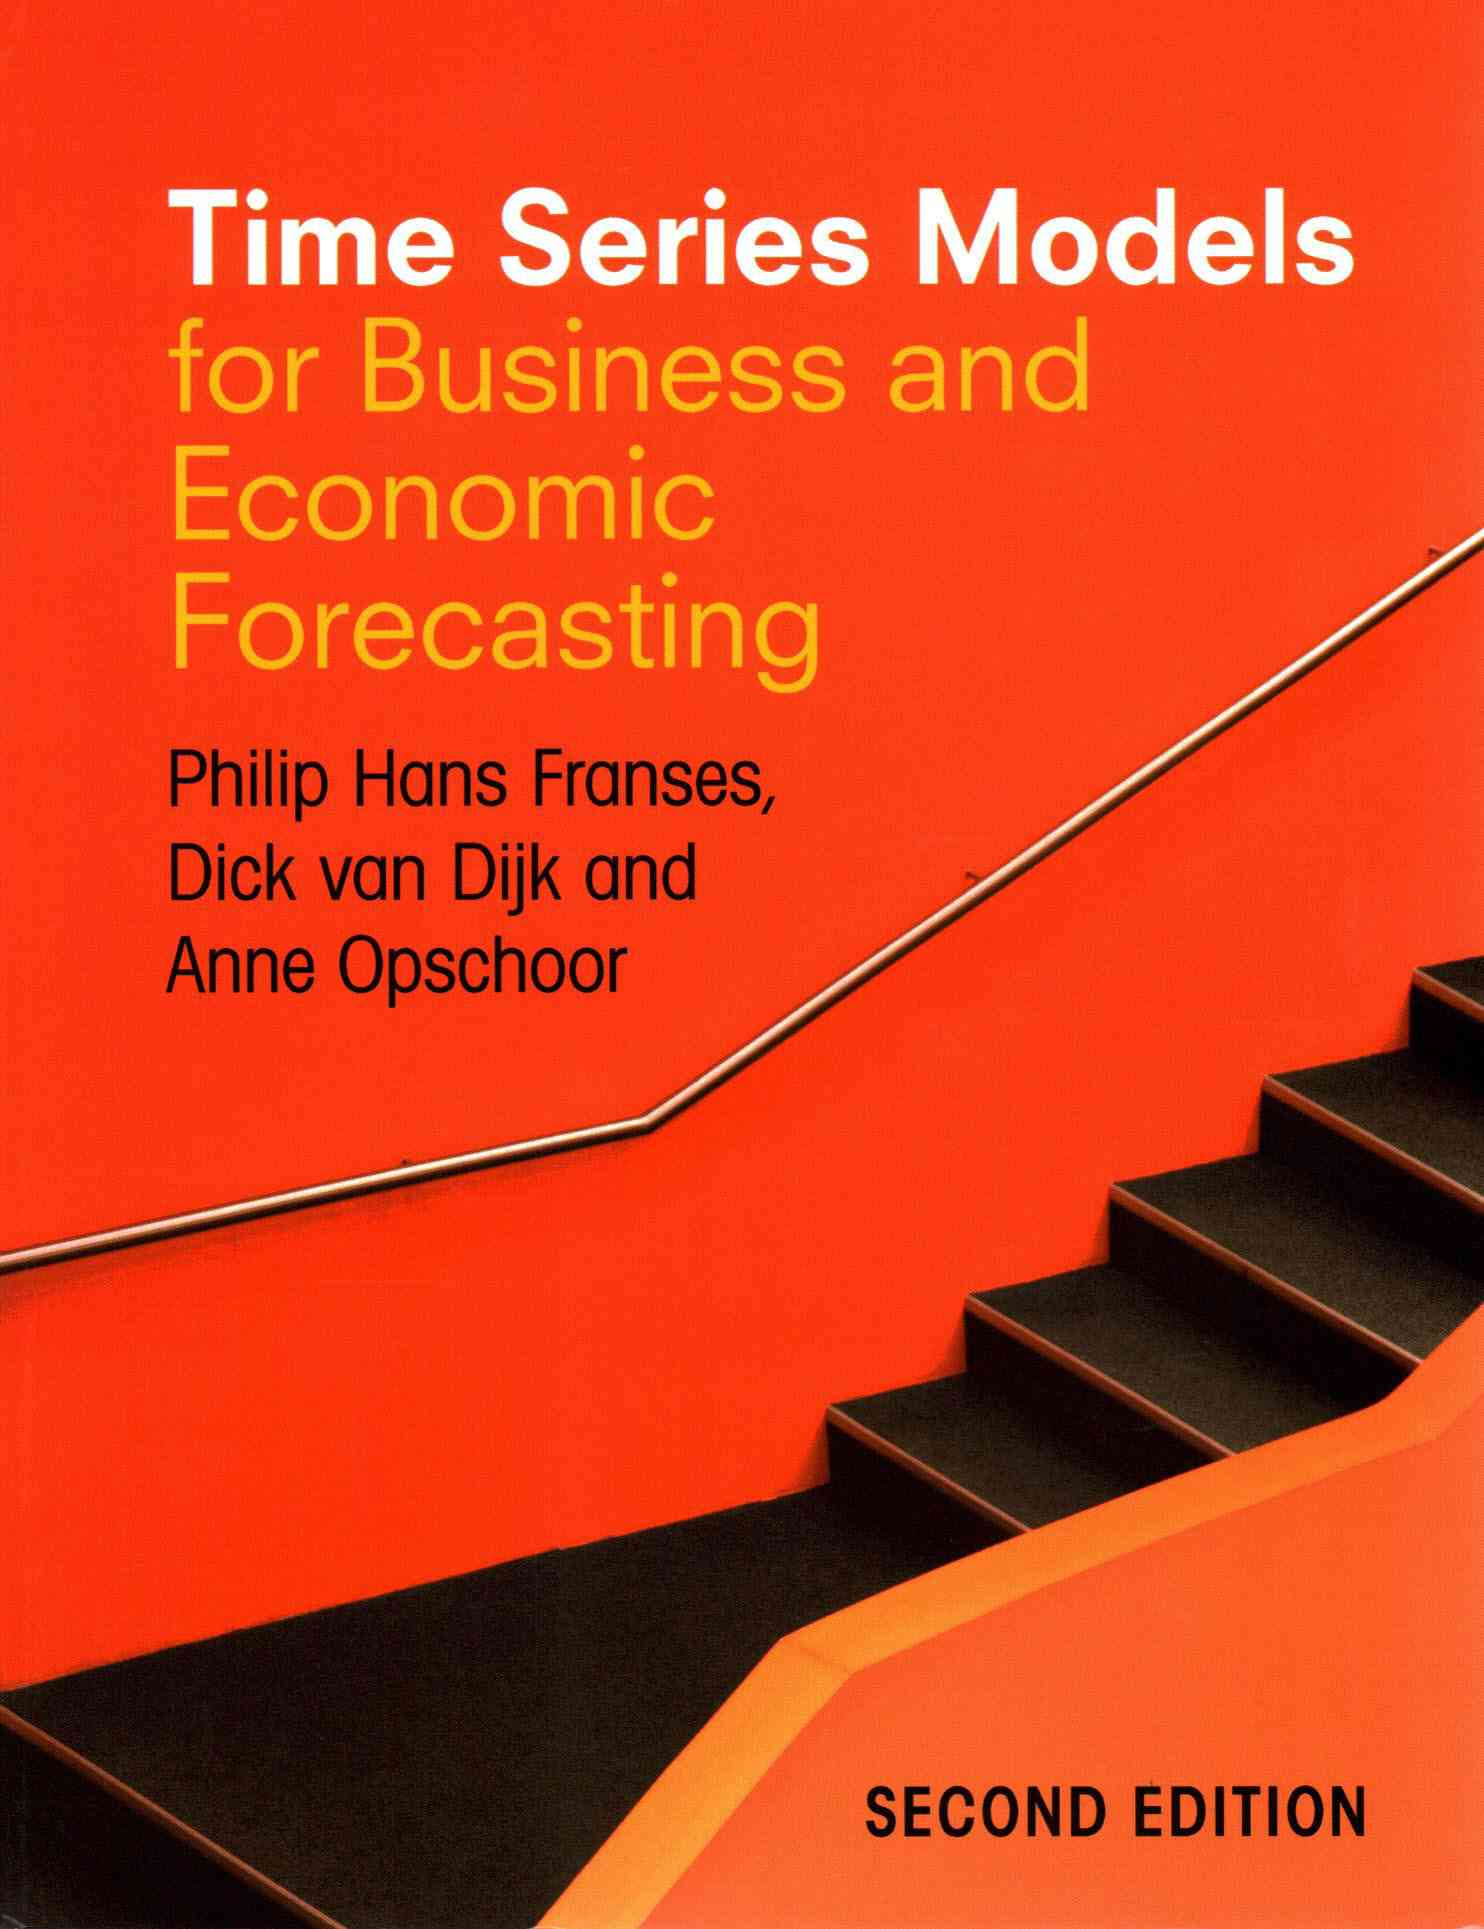 Time Series Models for Business and Economic Forecasting By Franses, Philip Hans/ Van Dijk, Dick/ Opschoor, Anne